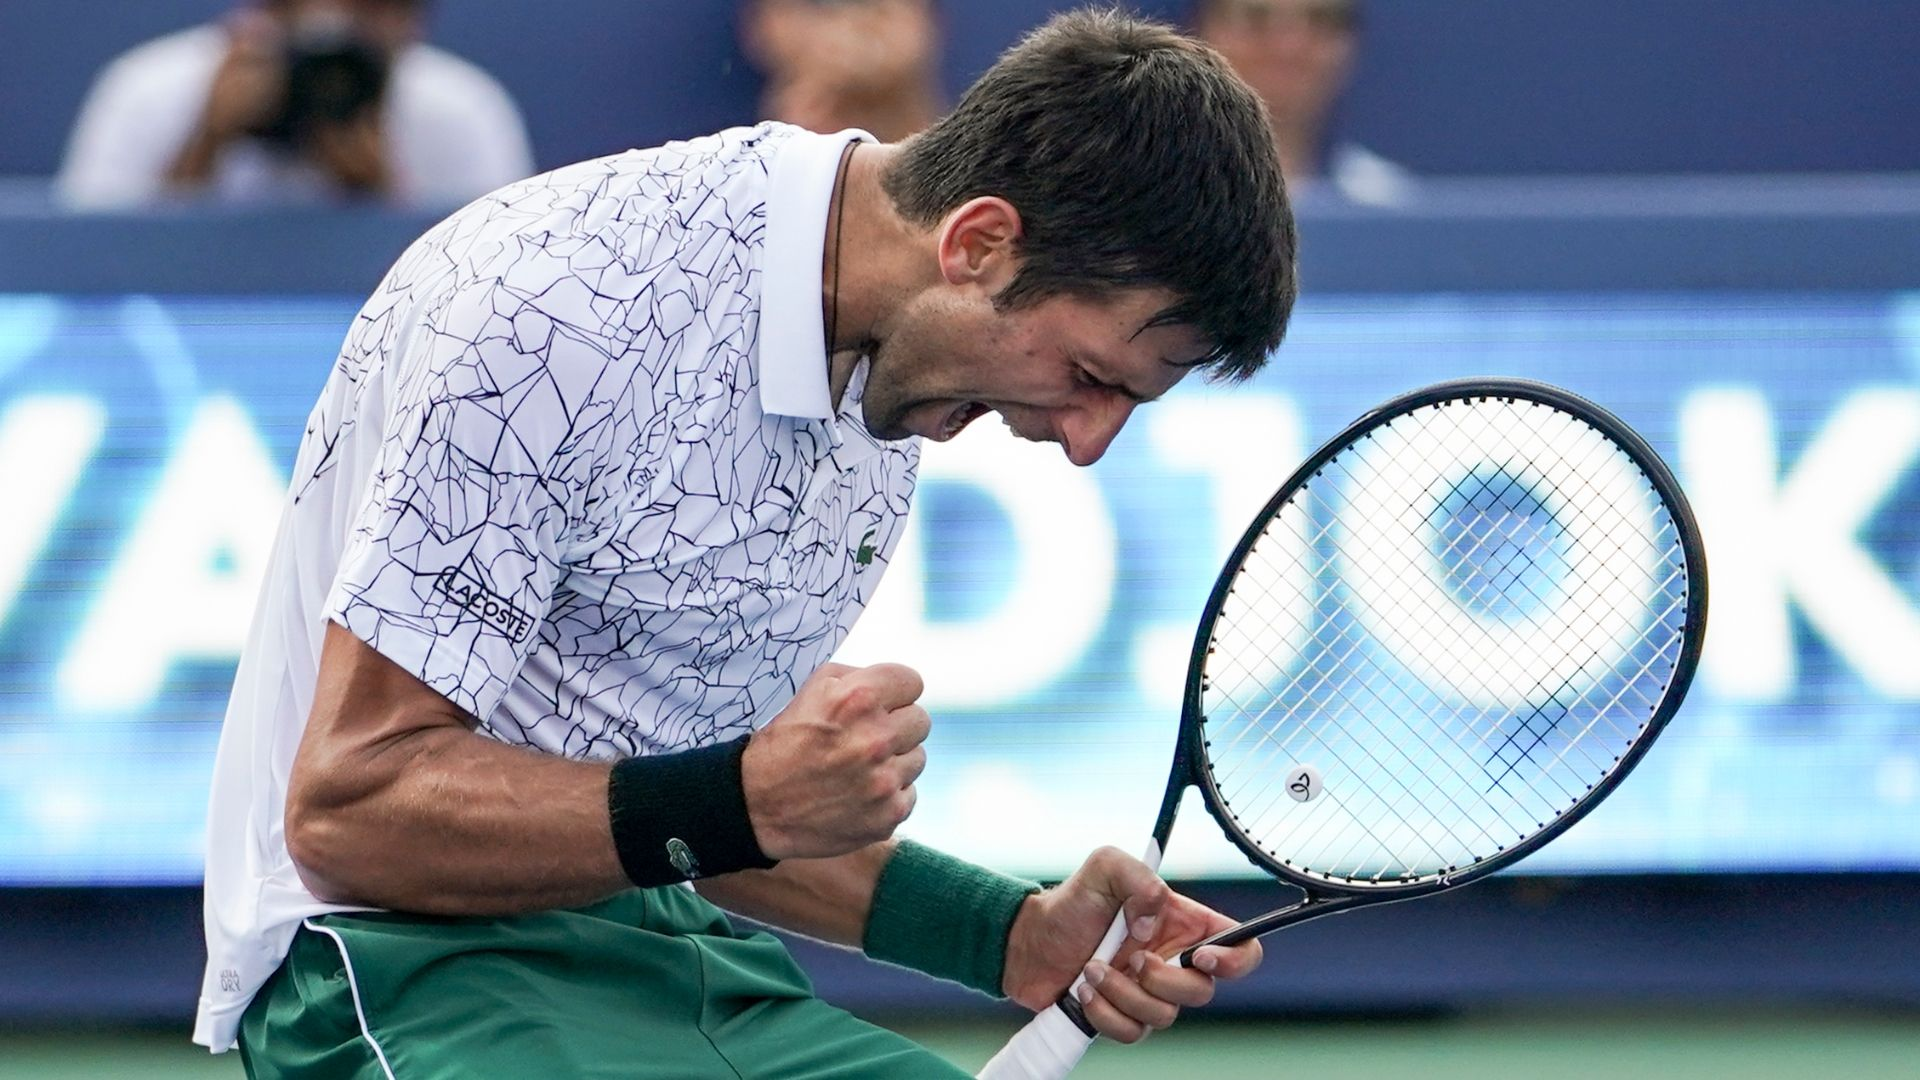 Djokovic beats Federer to win Western & Southern Open title